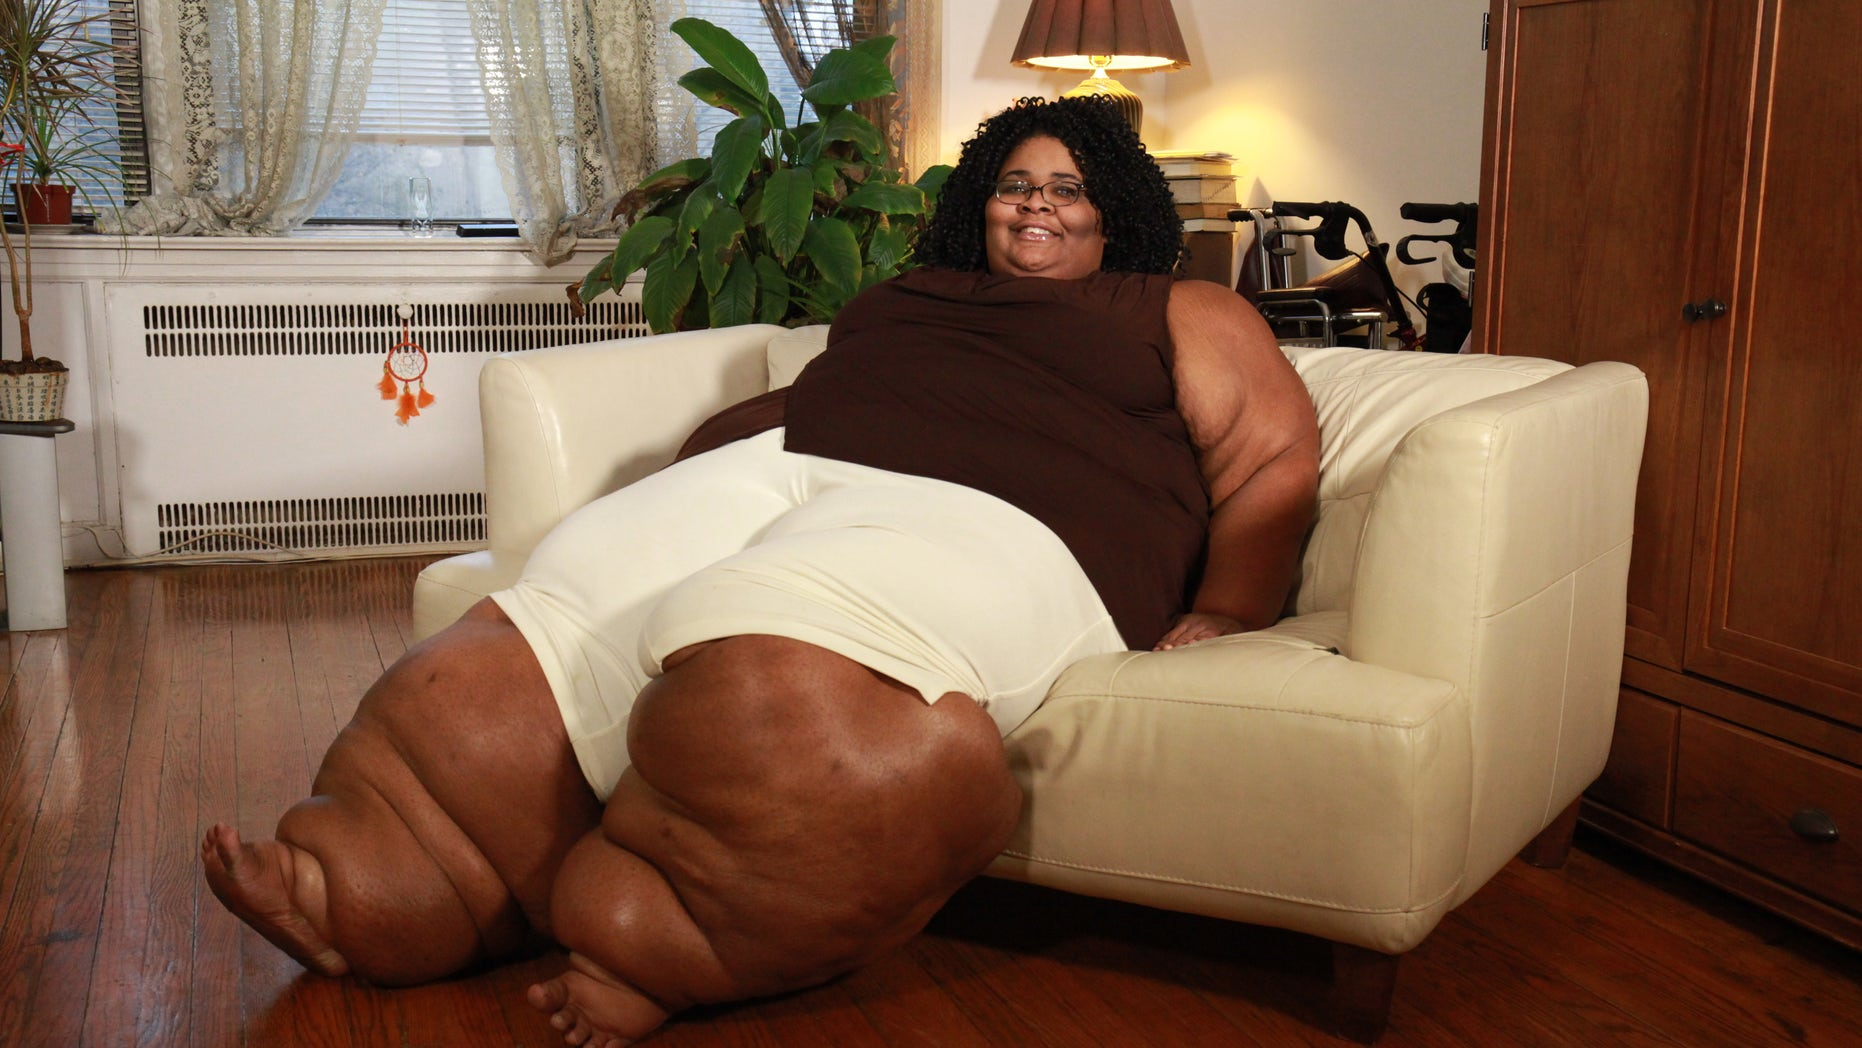 Katia Page from New Jersey suffers with lipedema, a chronic disorder that causes fatty tissue to accumulate in mass around the lower body.